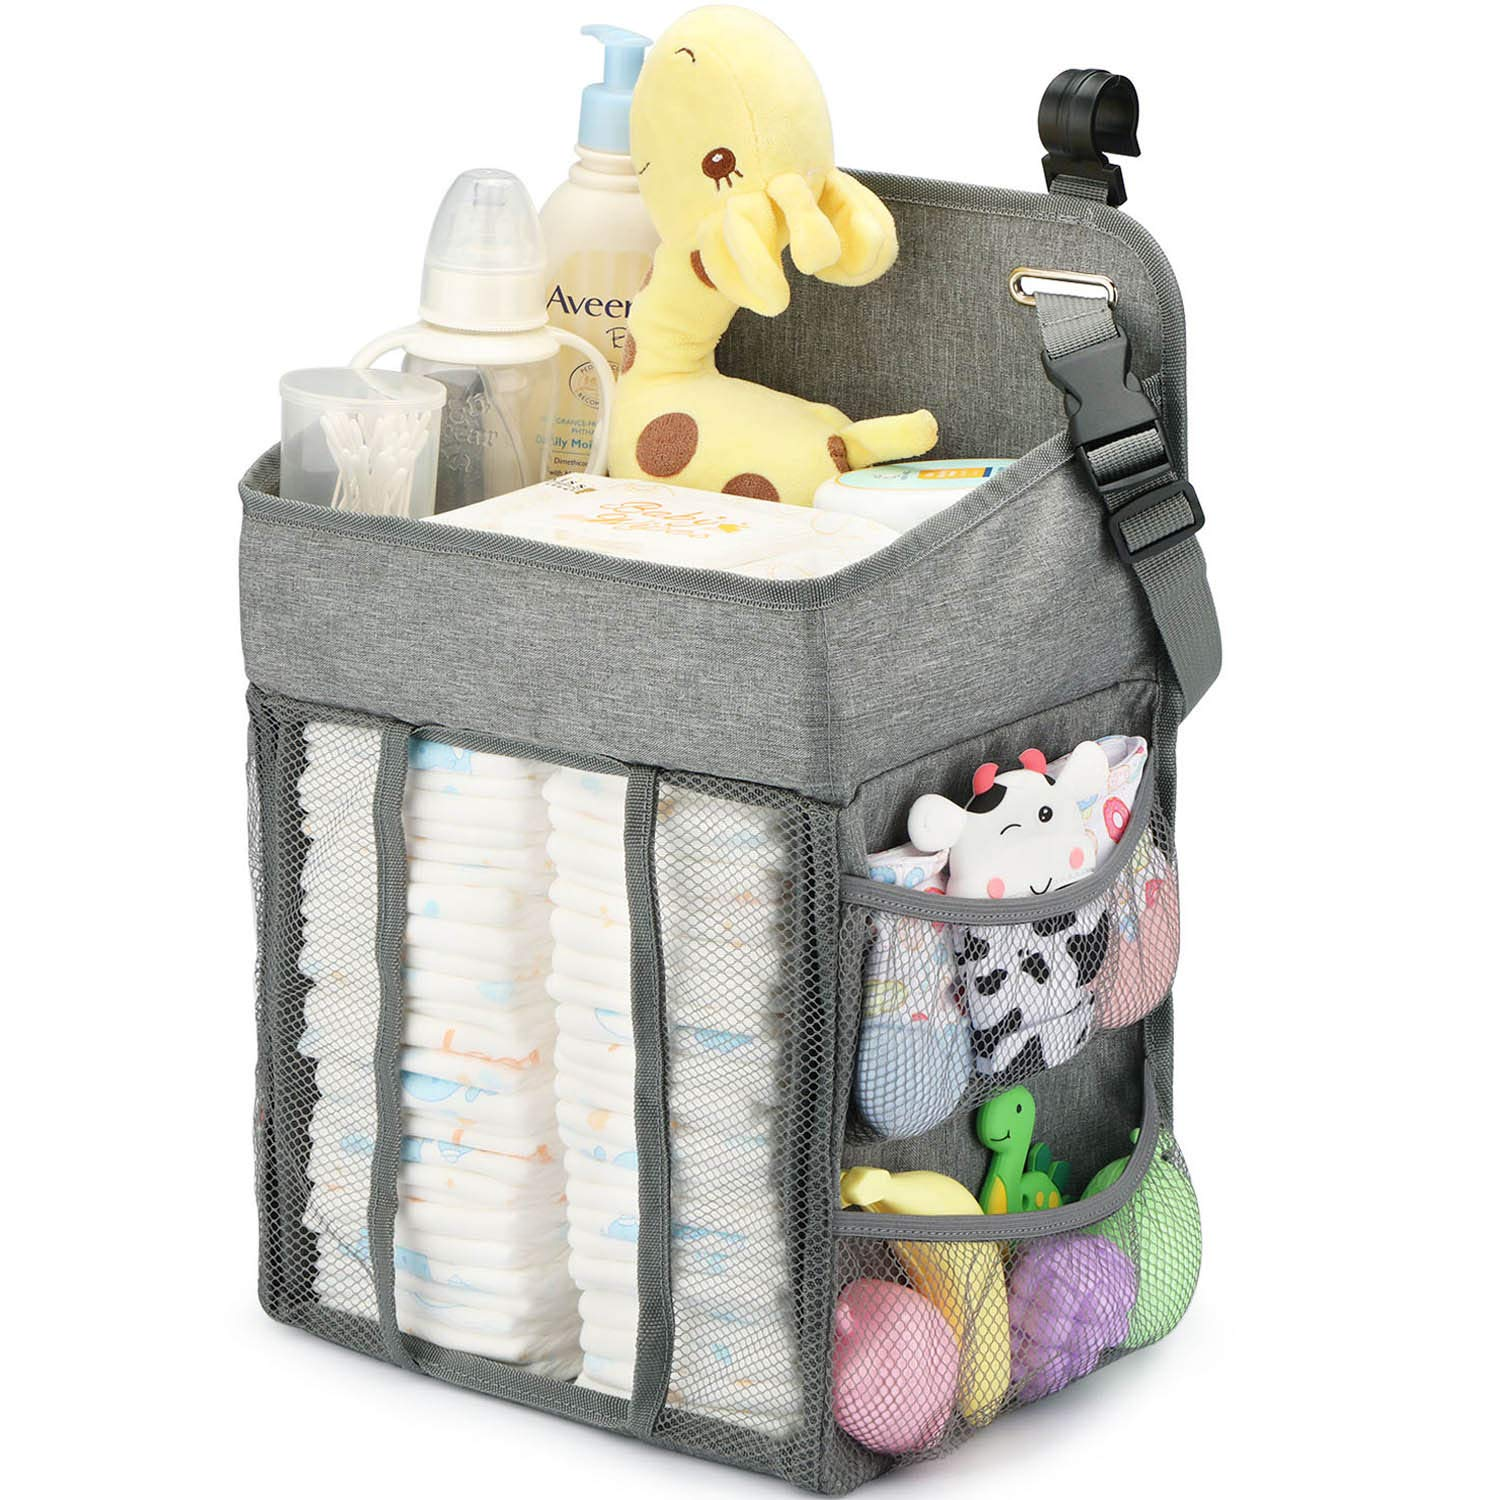 Changing Table Diaper Organizer - Baby Hanging Diaper Stacker Nursery Caddy Organizer for Cribs Playard Baby Essentials Storage (Gray) by Maliton